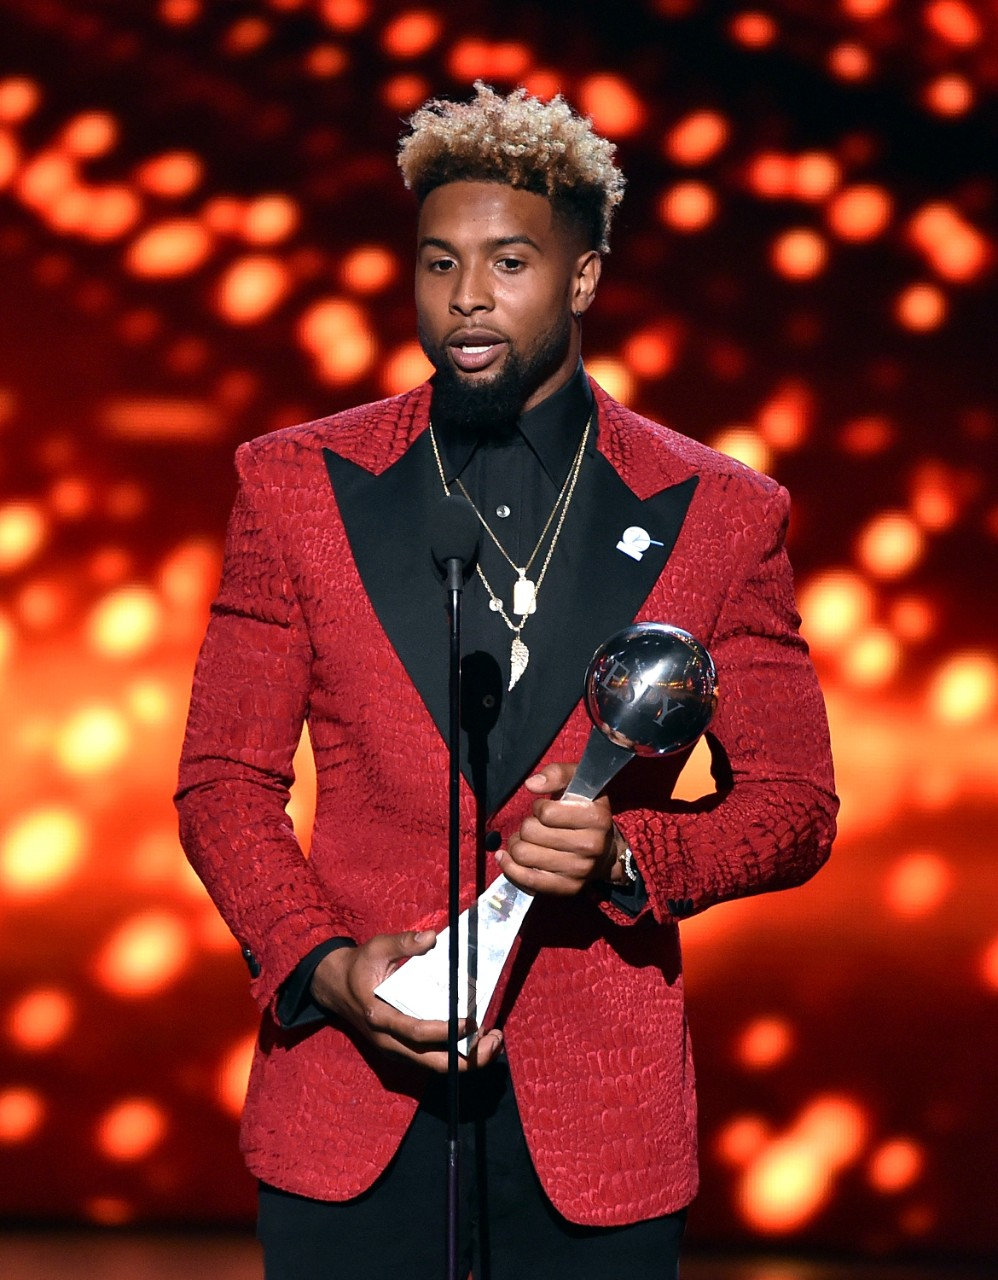 odell beckham jr - photo #6